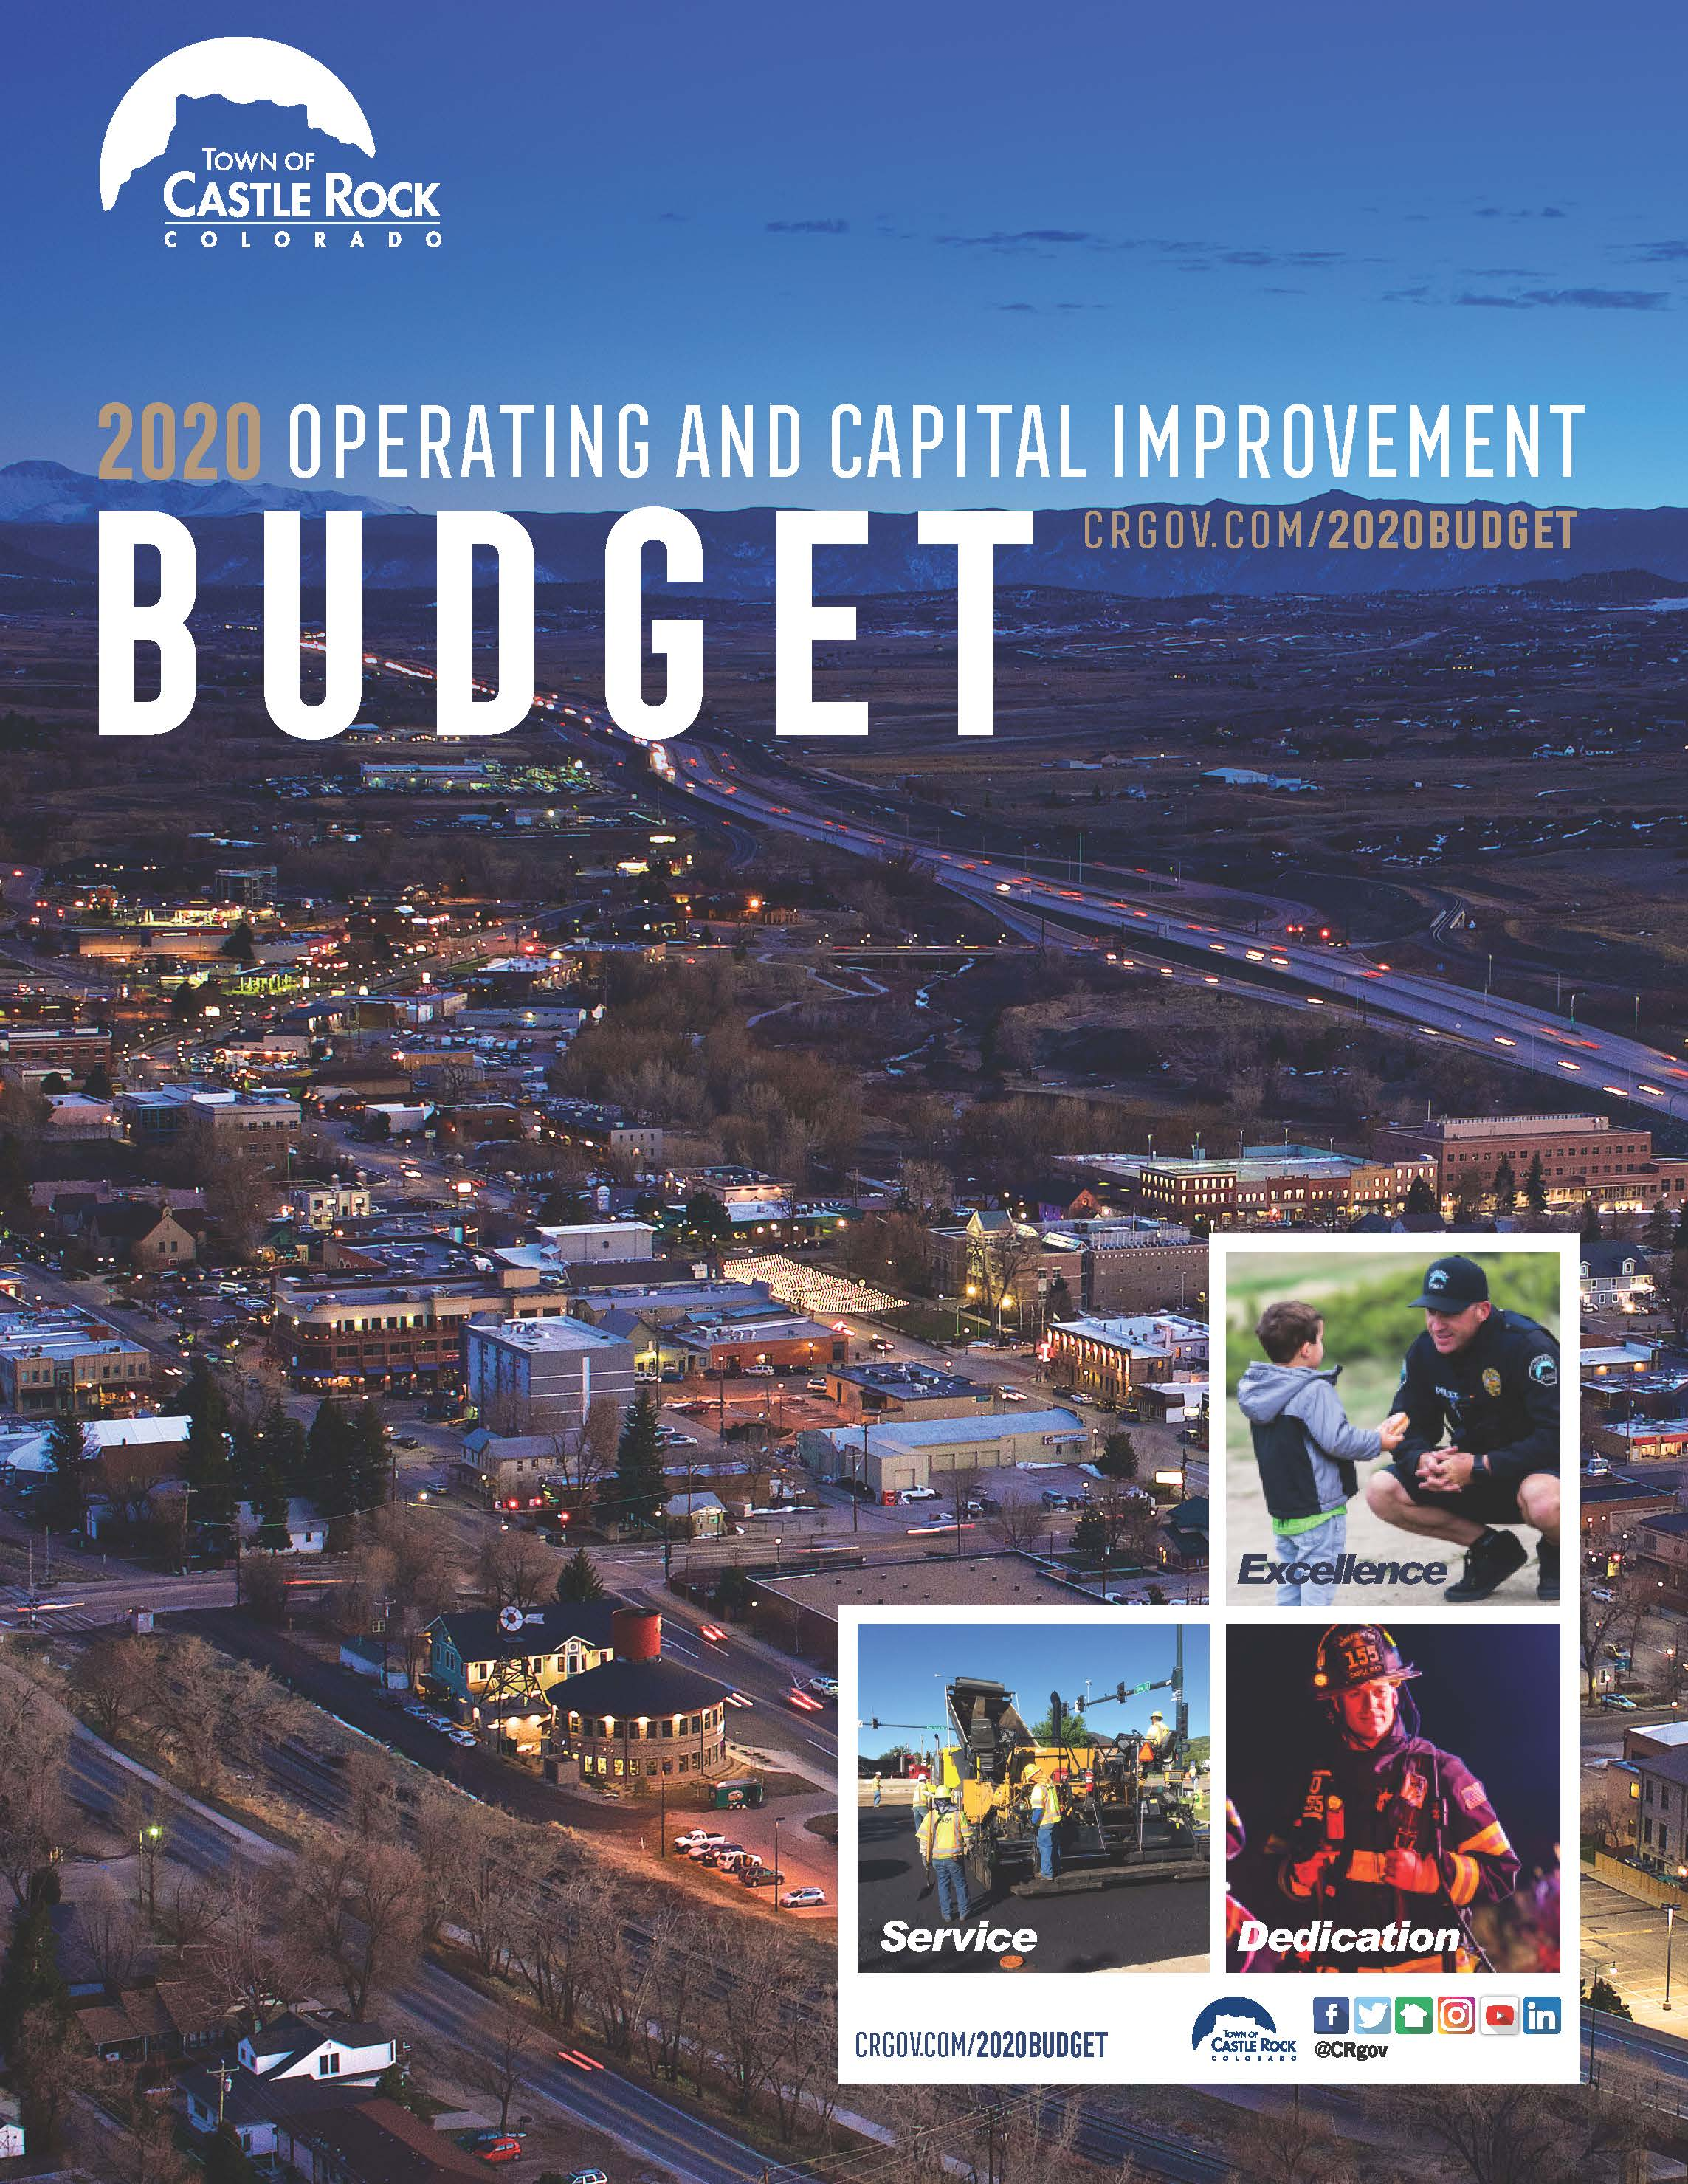 2020 Budget (PDF) Opens in new window